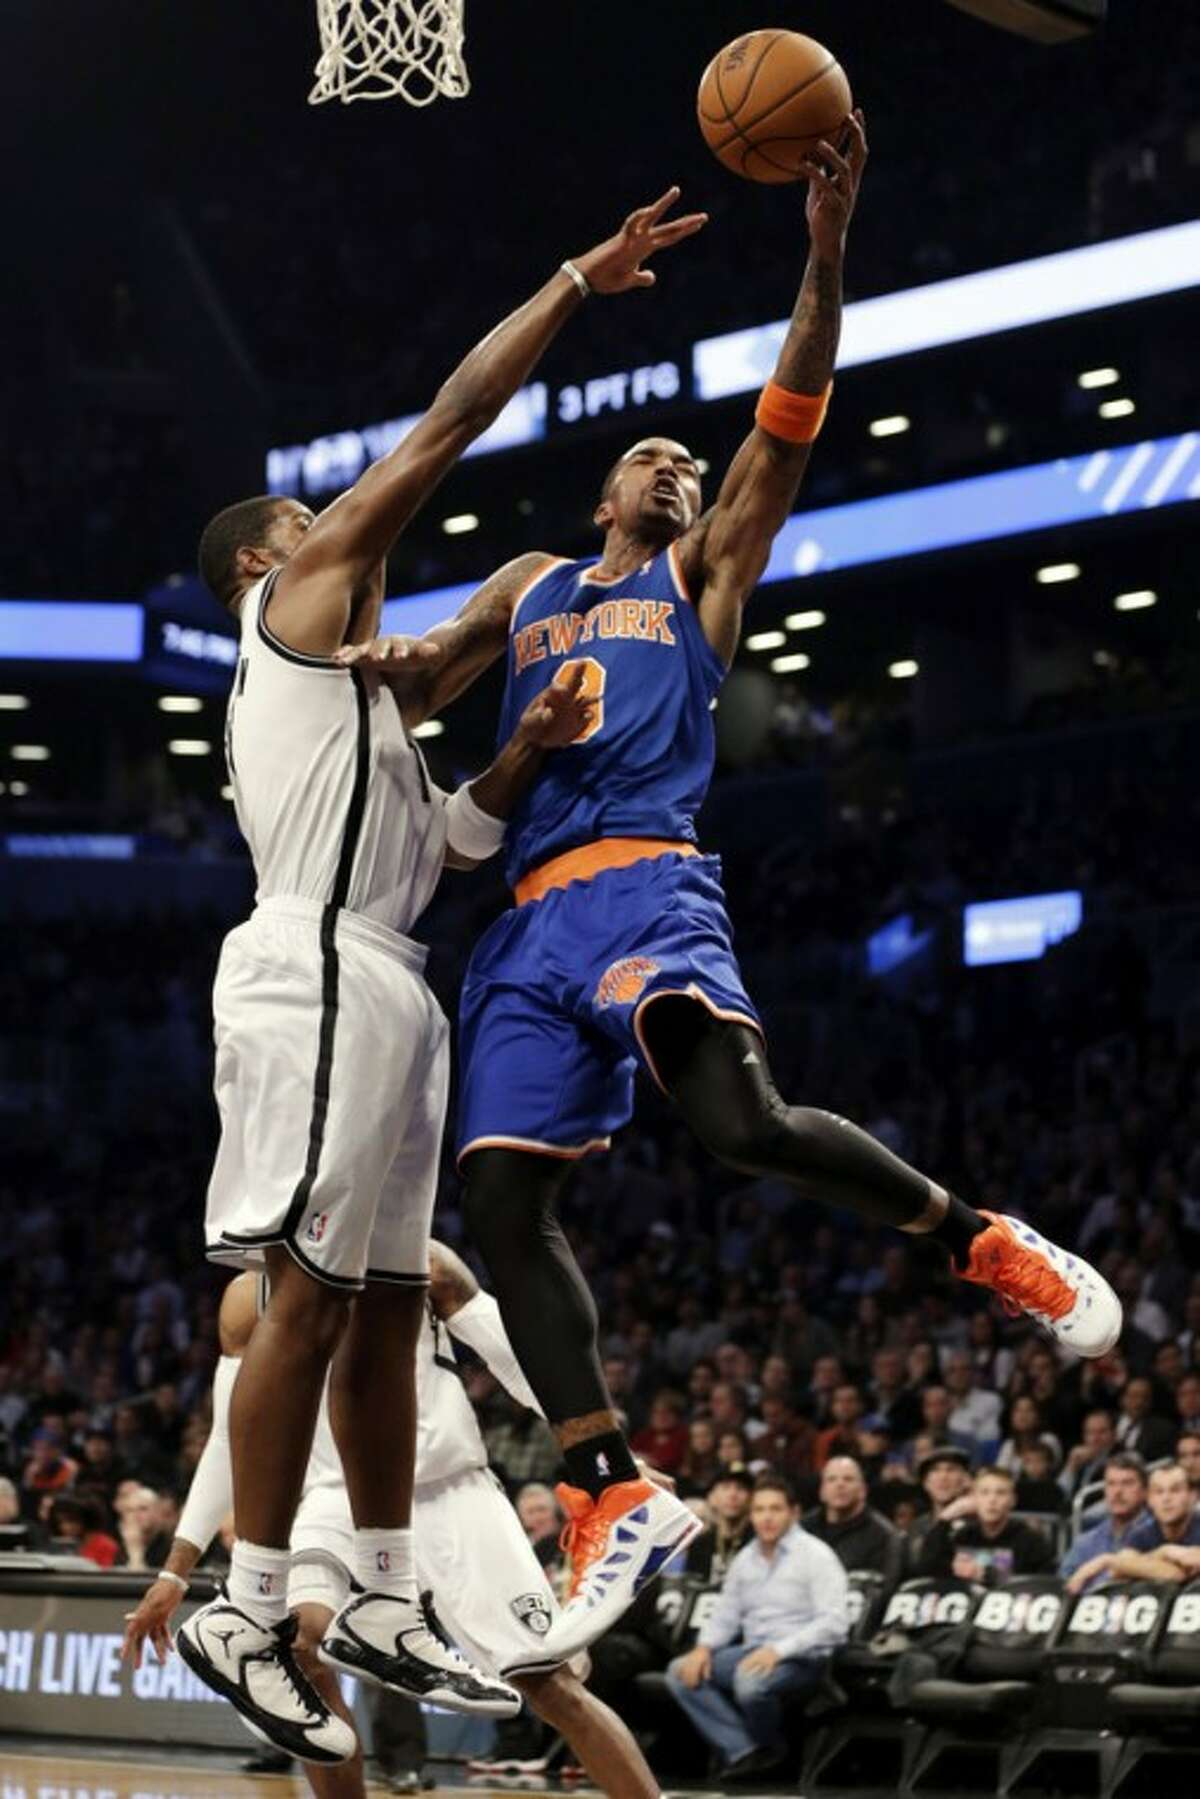 New York Knicks guard J.R. Smith (8) shoots as Brooklyn Nets guard Joe Johnson (7) defends in the first half of their NBA basketball game at Barclays Center, Tuesday, Dec. 11, 2012, in New York. (AP Photo/Kathy Willens)